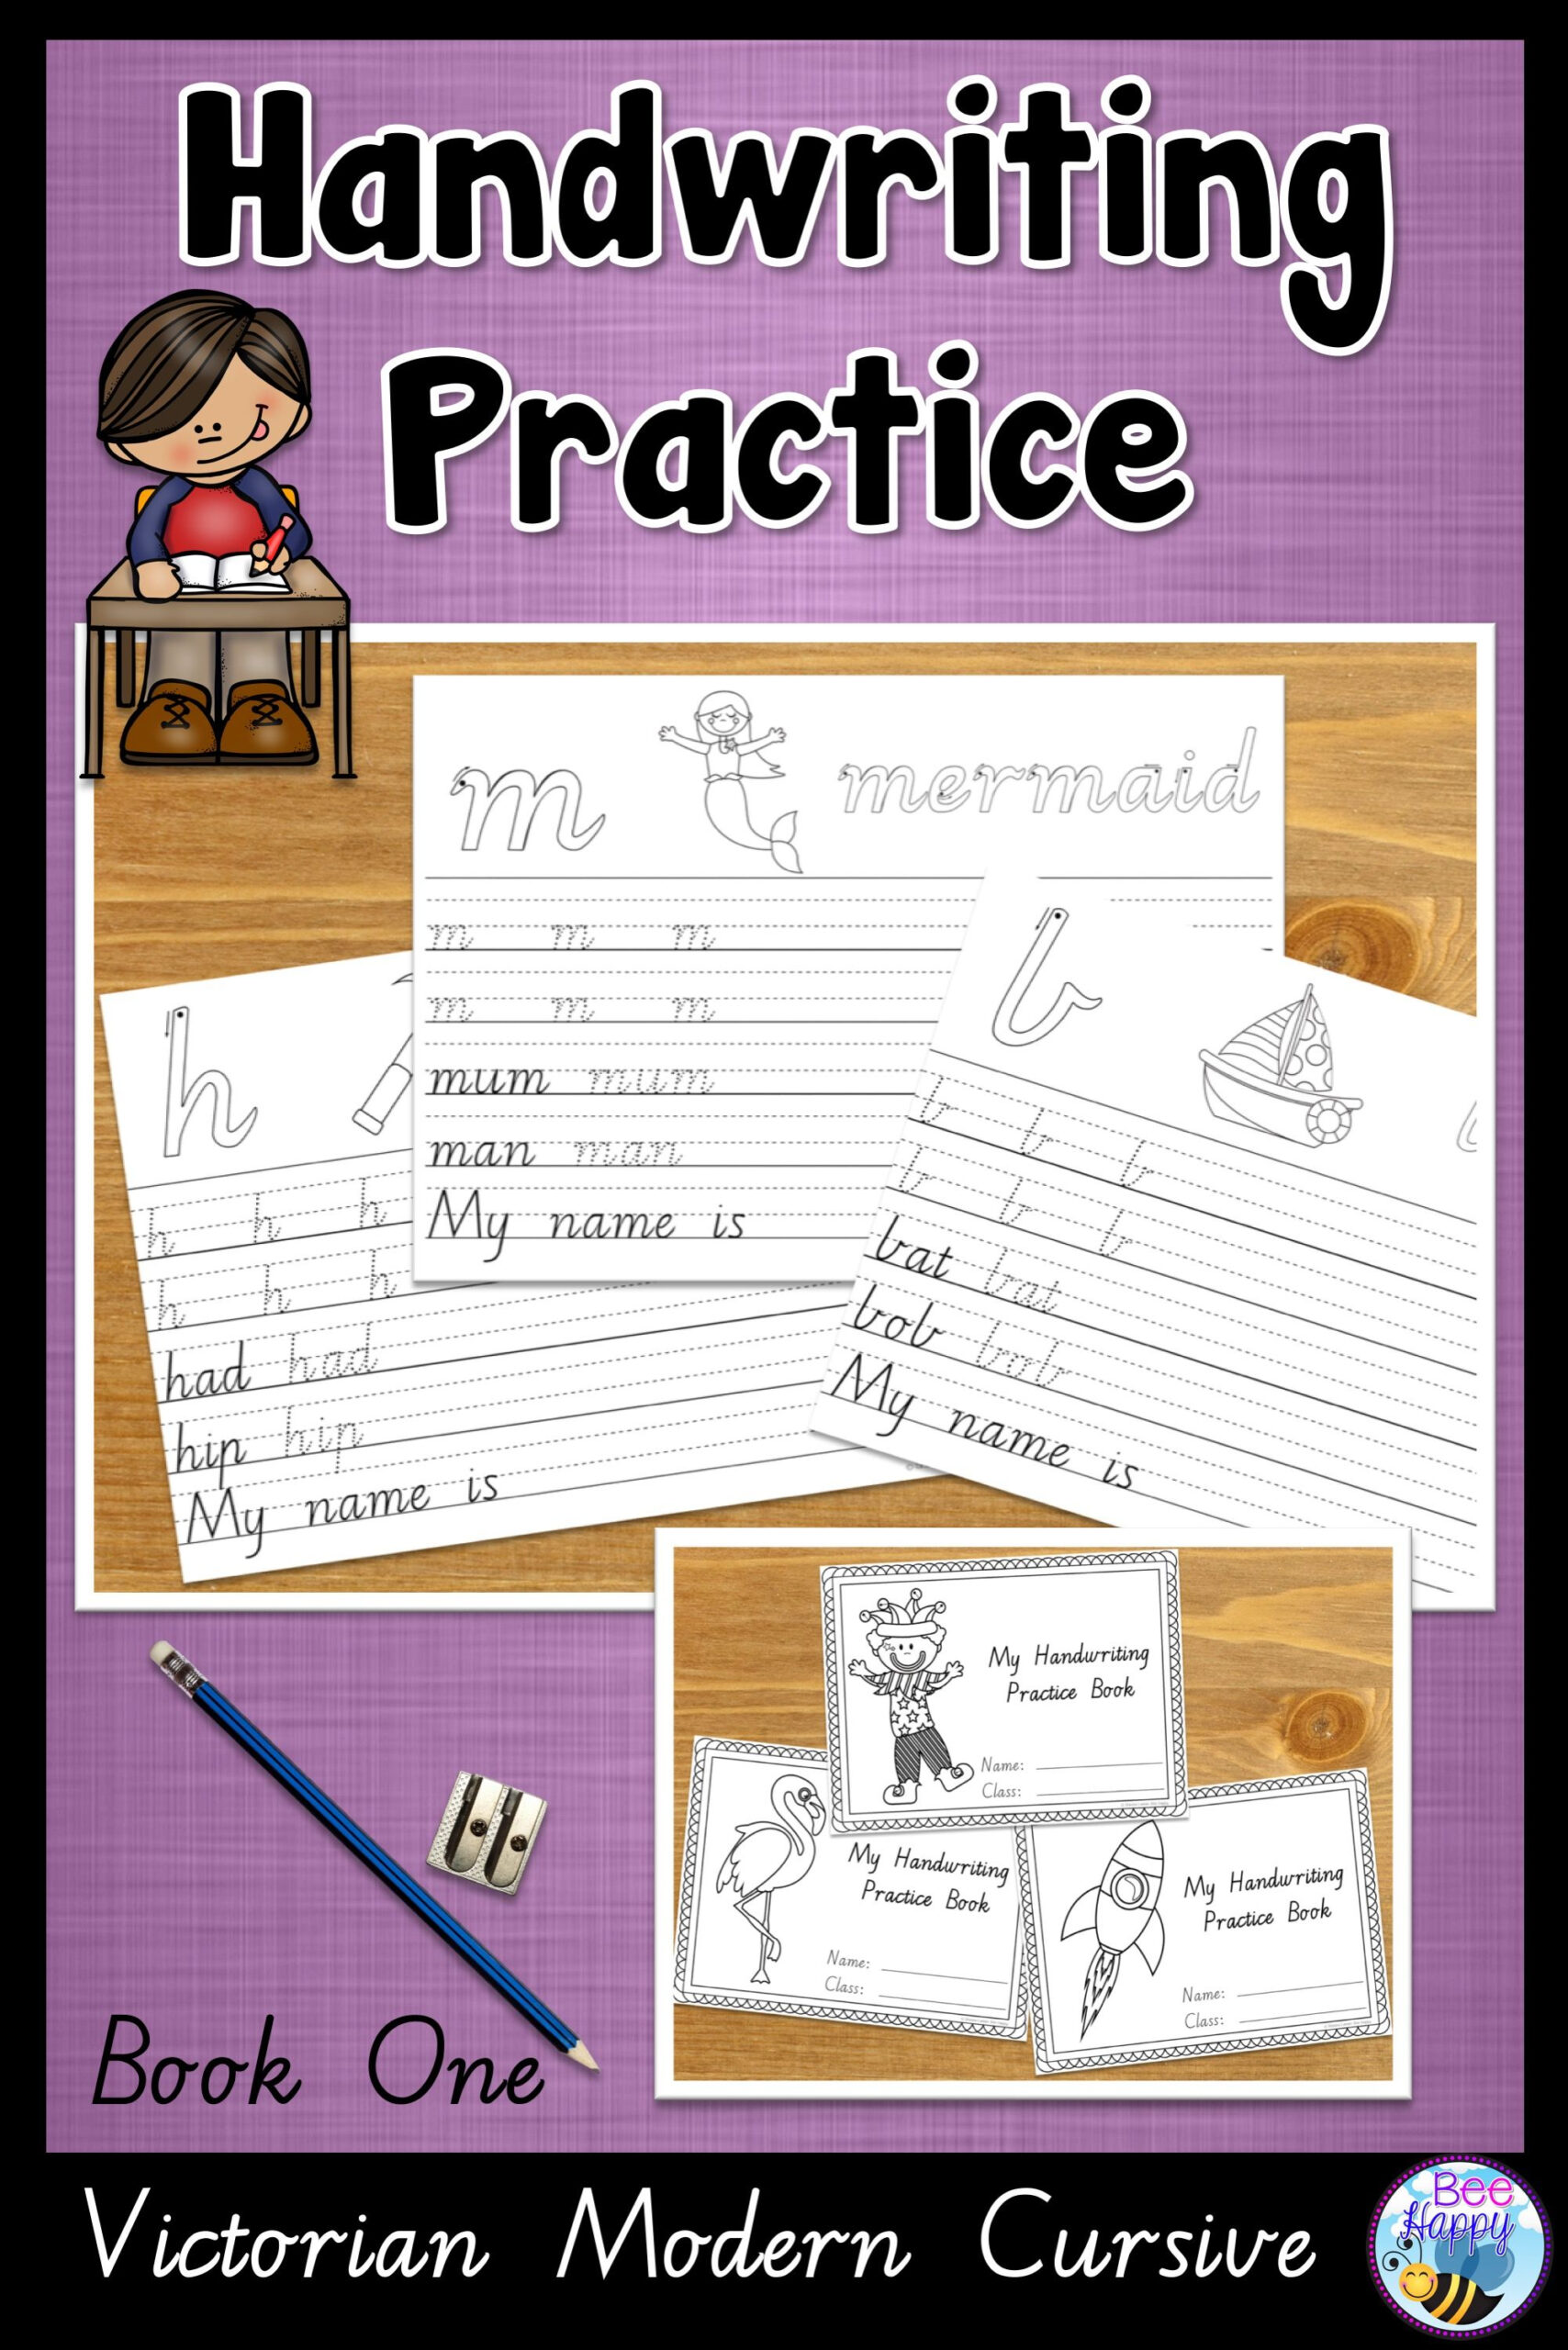 Handwriting Practice For Beginning Writers, Prep, Year 1 pertaining to Name Tracing Victorian Modern Cursive